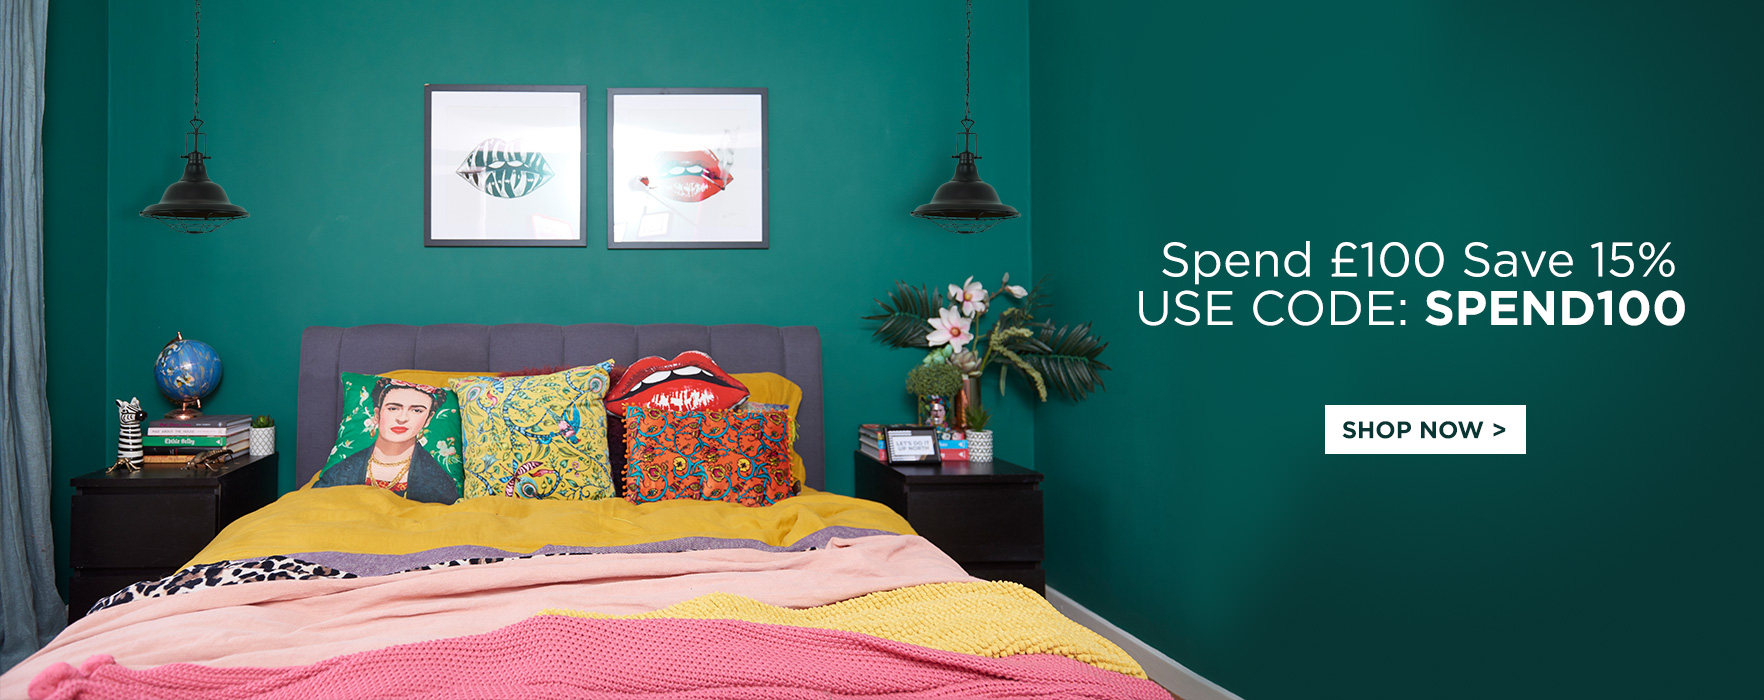 Spend And Save - Spend £100 Save 15%